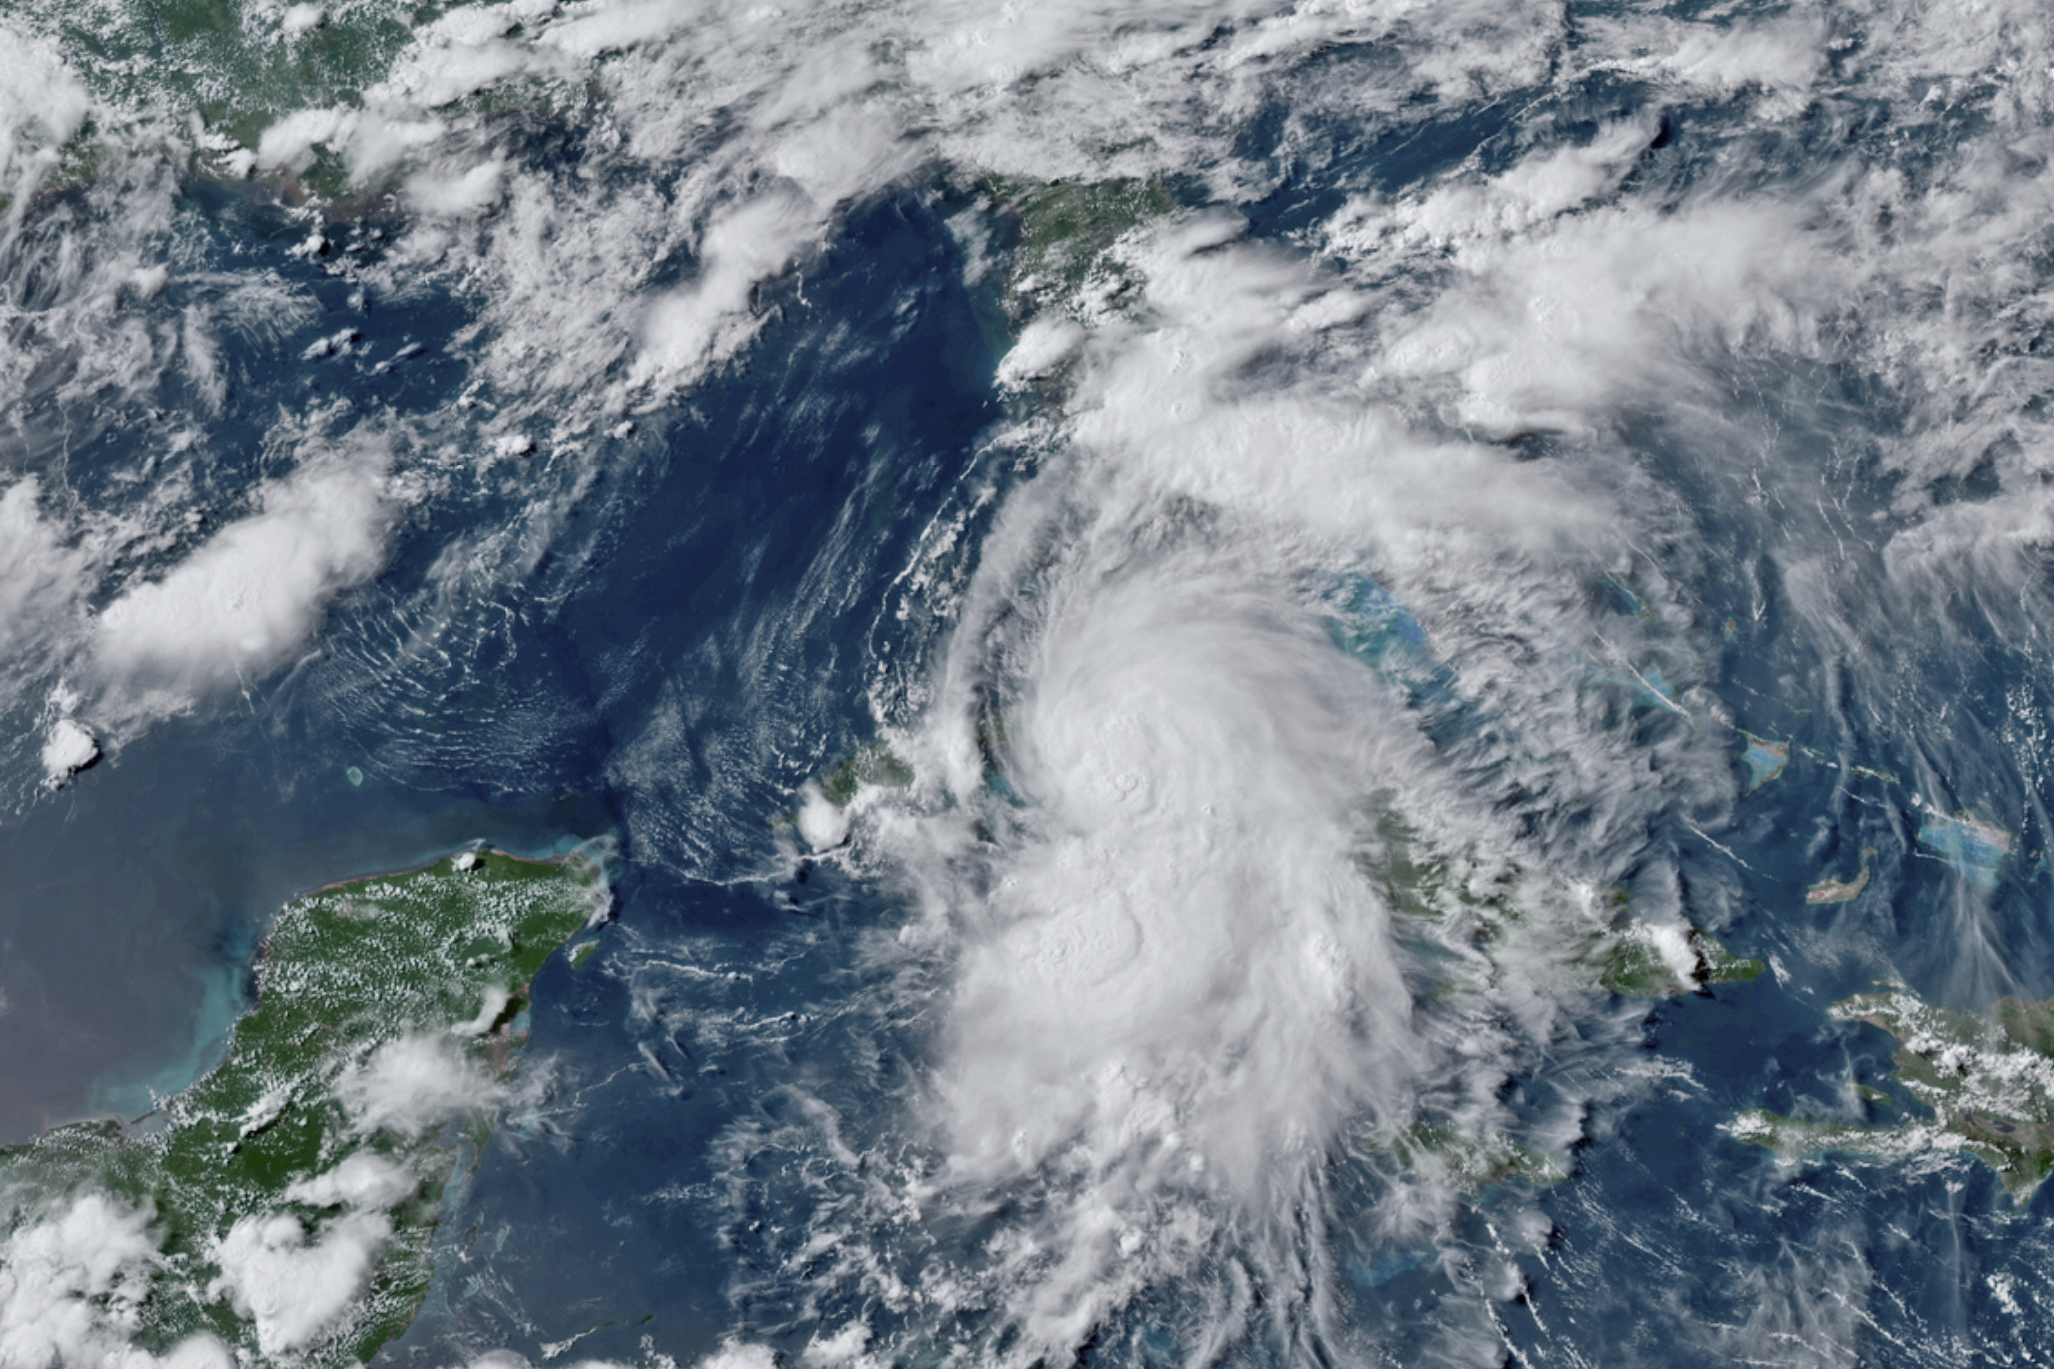 This GOES-16 GeoColor satellite image taken Monday, July 5, 2021, at 4:50 p.m. EDT, and provided by NOAA, shows Tropical Storm Elsa over western Cuba with strong rain and winds. Forecasters say it will move on to the Florida Keys on Tuesday and Florida's central Gulf coast by Wednesday. The storm is moving over mainly rural areas to the east of Havana on Monday after making landfall near Cienega de Zapata, a natural park with few inhabitants. (NOAA via AP)